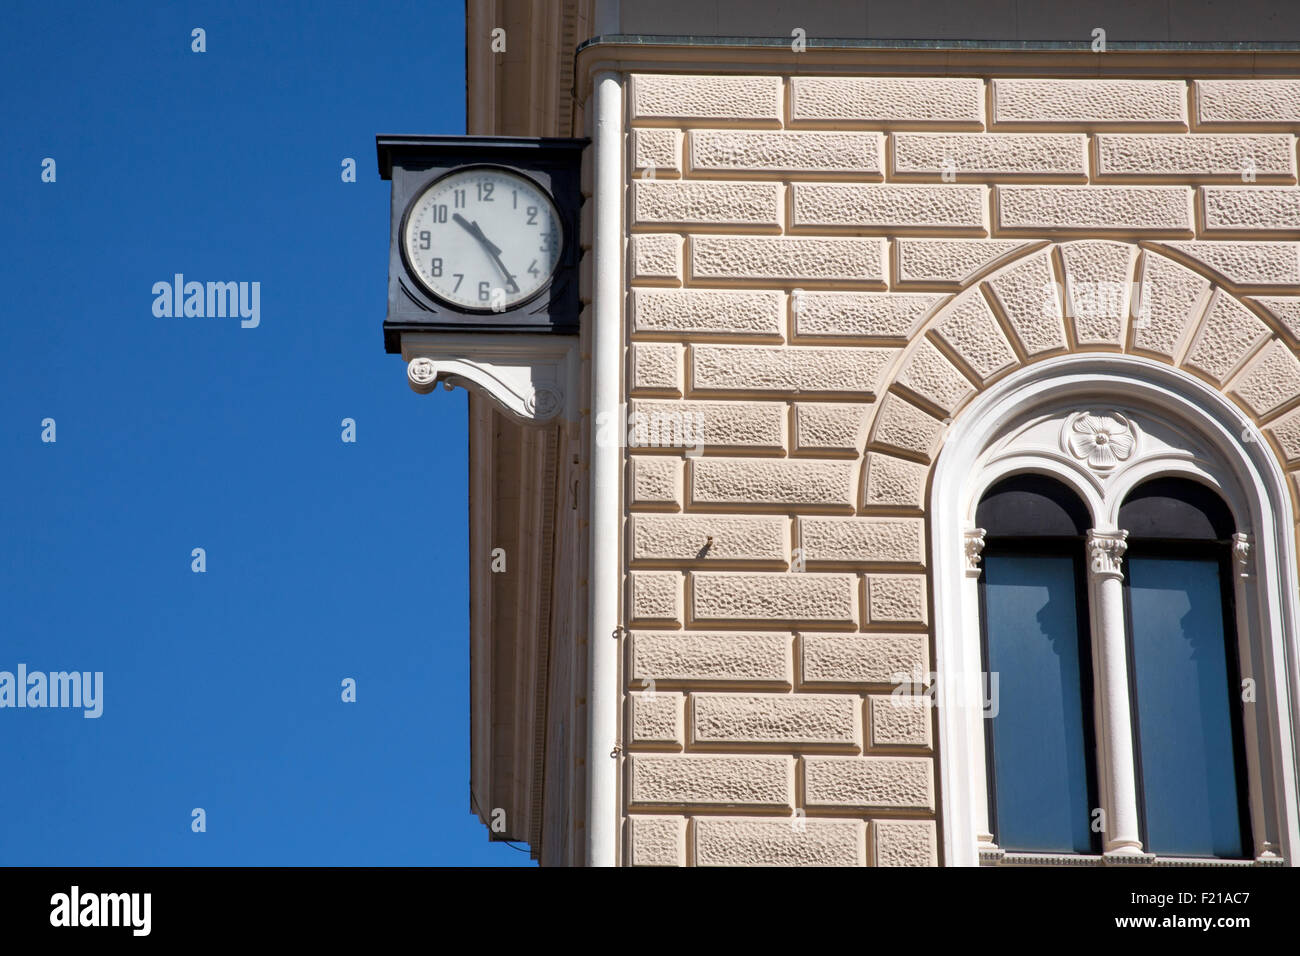 The Bologna train station clock stopped at 10:25, remained a symbol of the station bombing in 1980, Bologna Italy - Stock Image